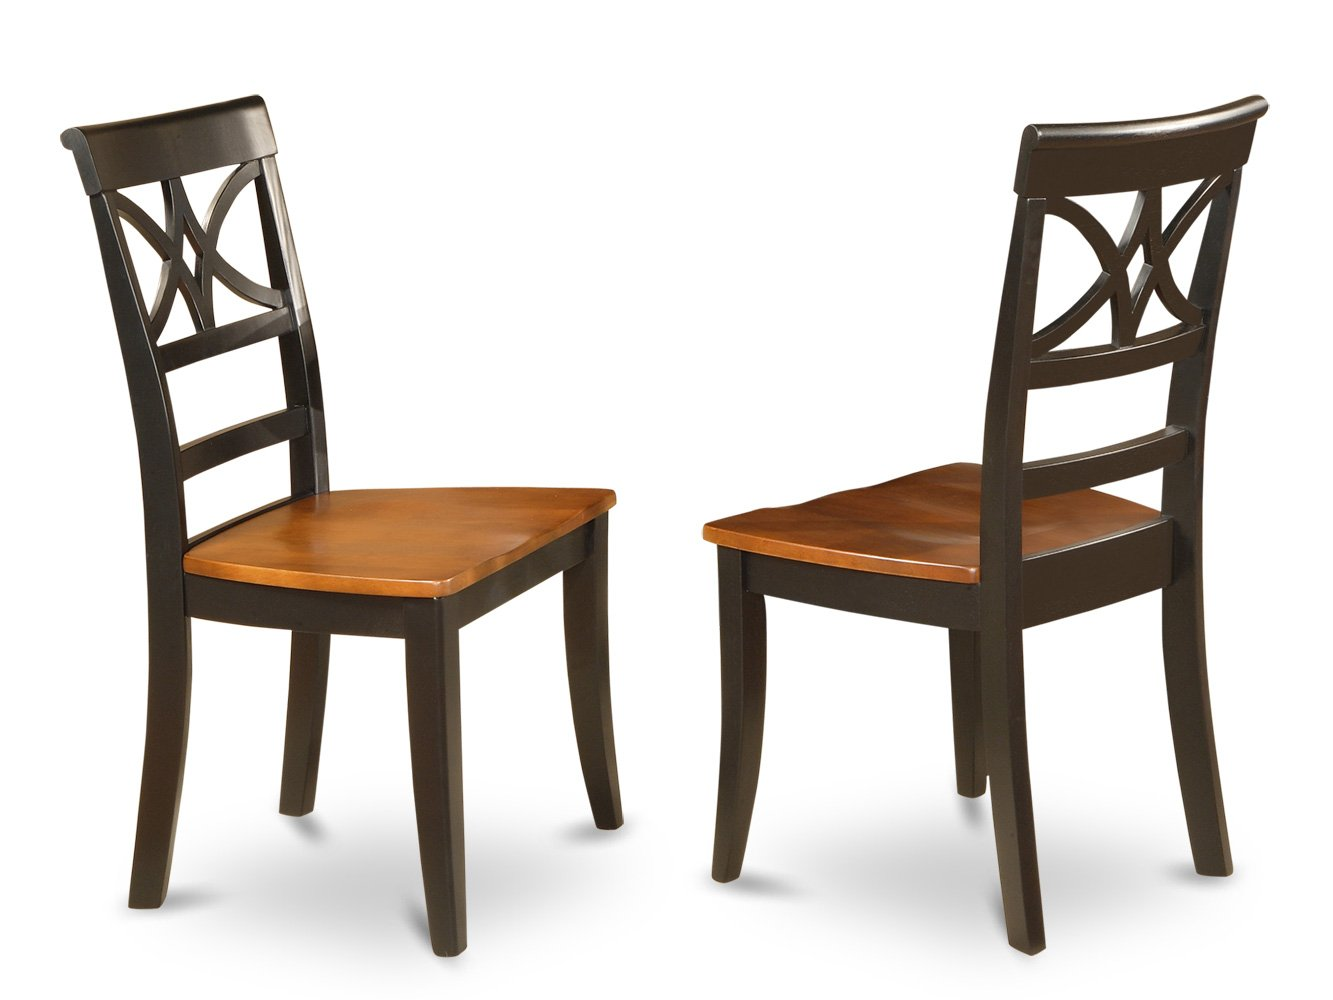 Wonderful image of Set of 4 Ellington dining room chairs with upholstered or wood seat in  with #9D612E color and 1333x1000 pixels